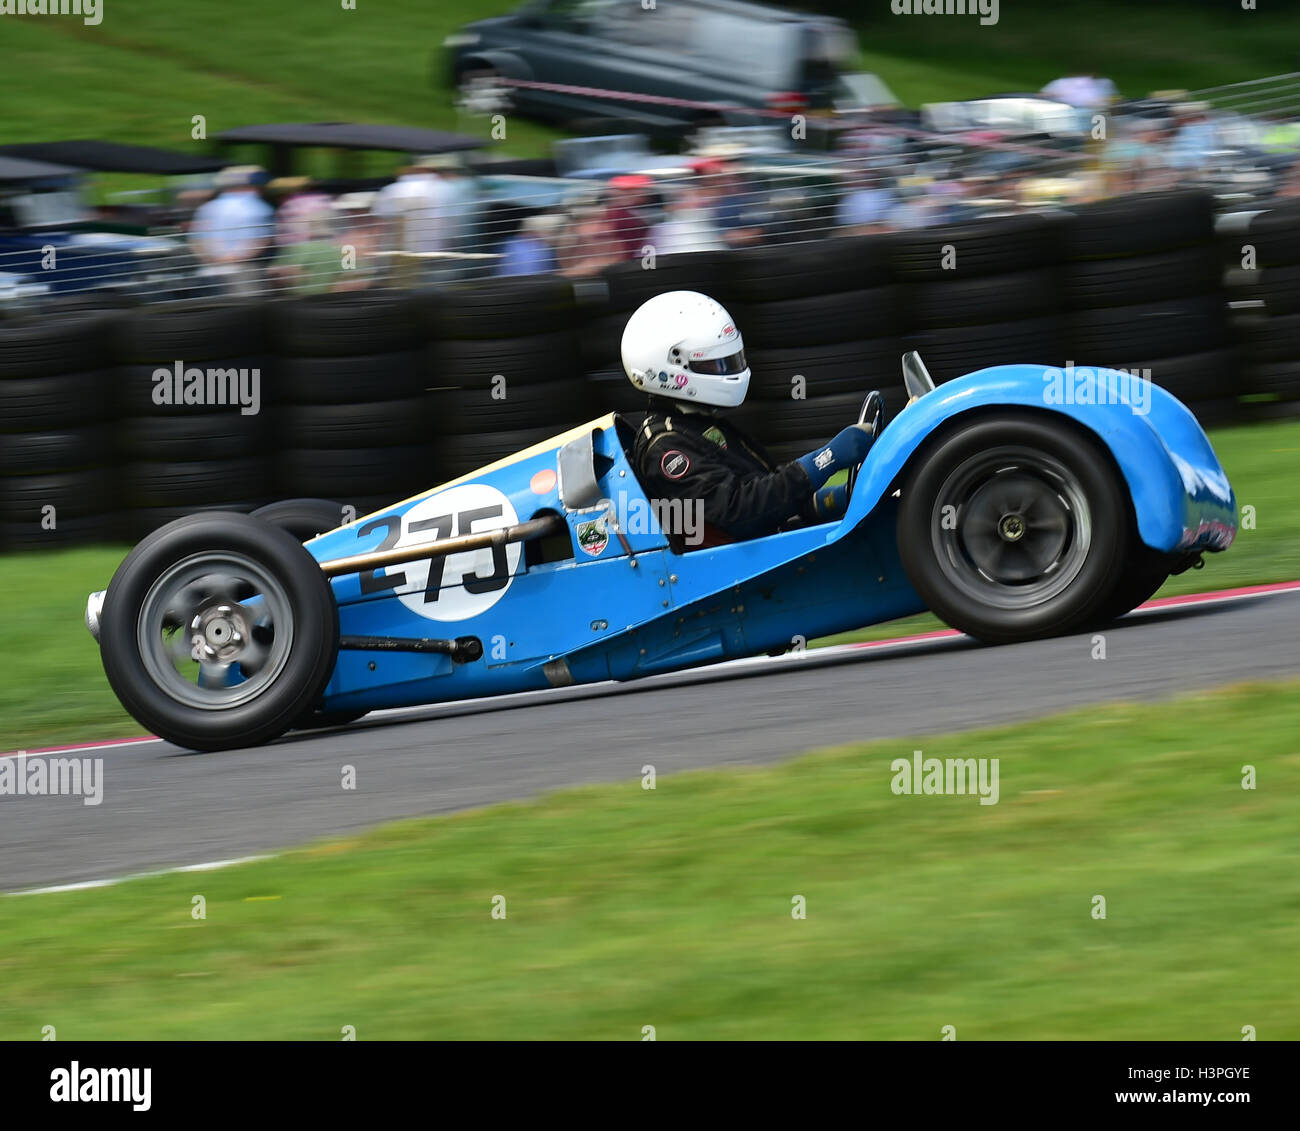 Richard Bishop Miller, Revis 500, F3 500cc Racing Cars, VSCC, Shuttleworth Trophy, Nuffield Trophy, Cadwell Park - Stock Image